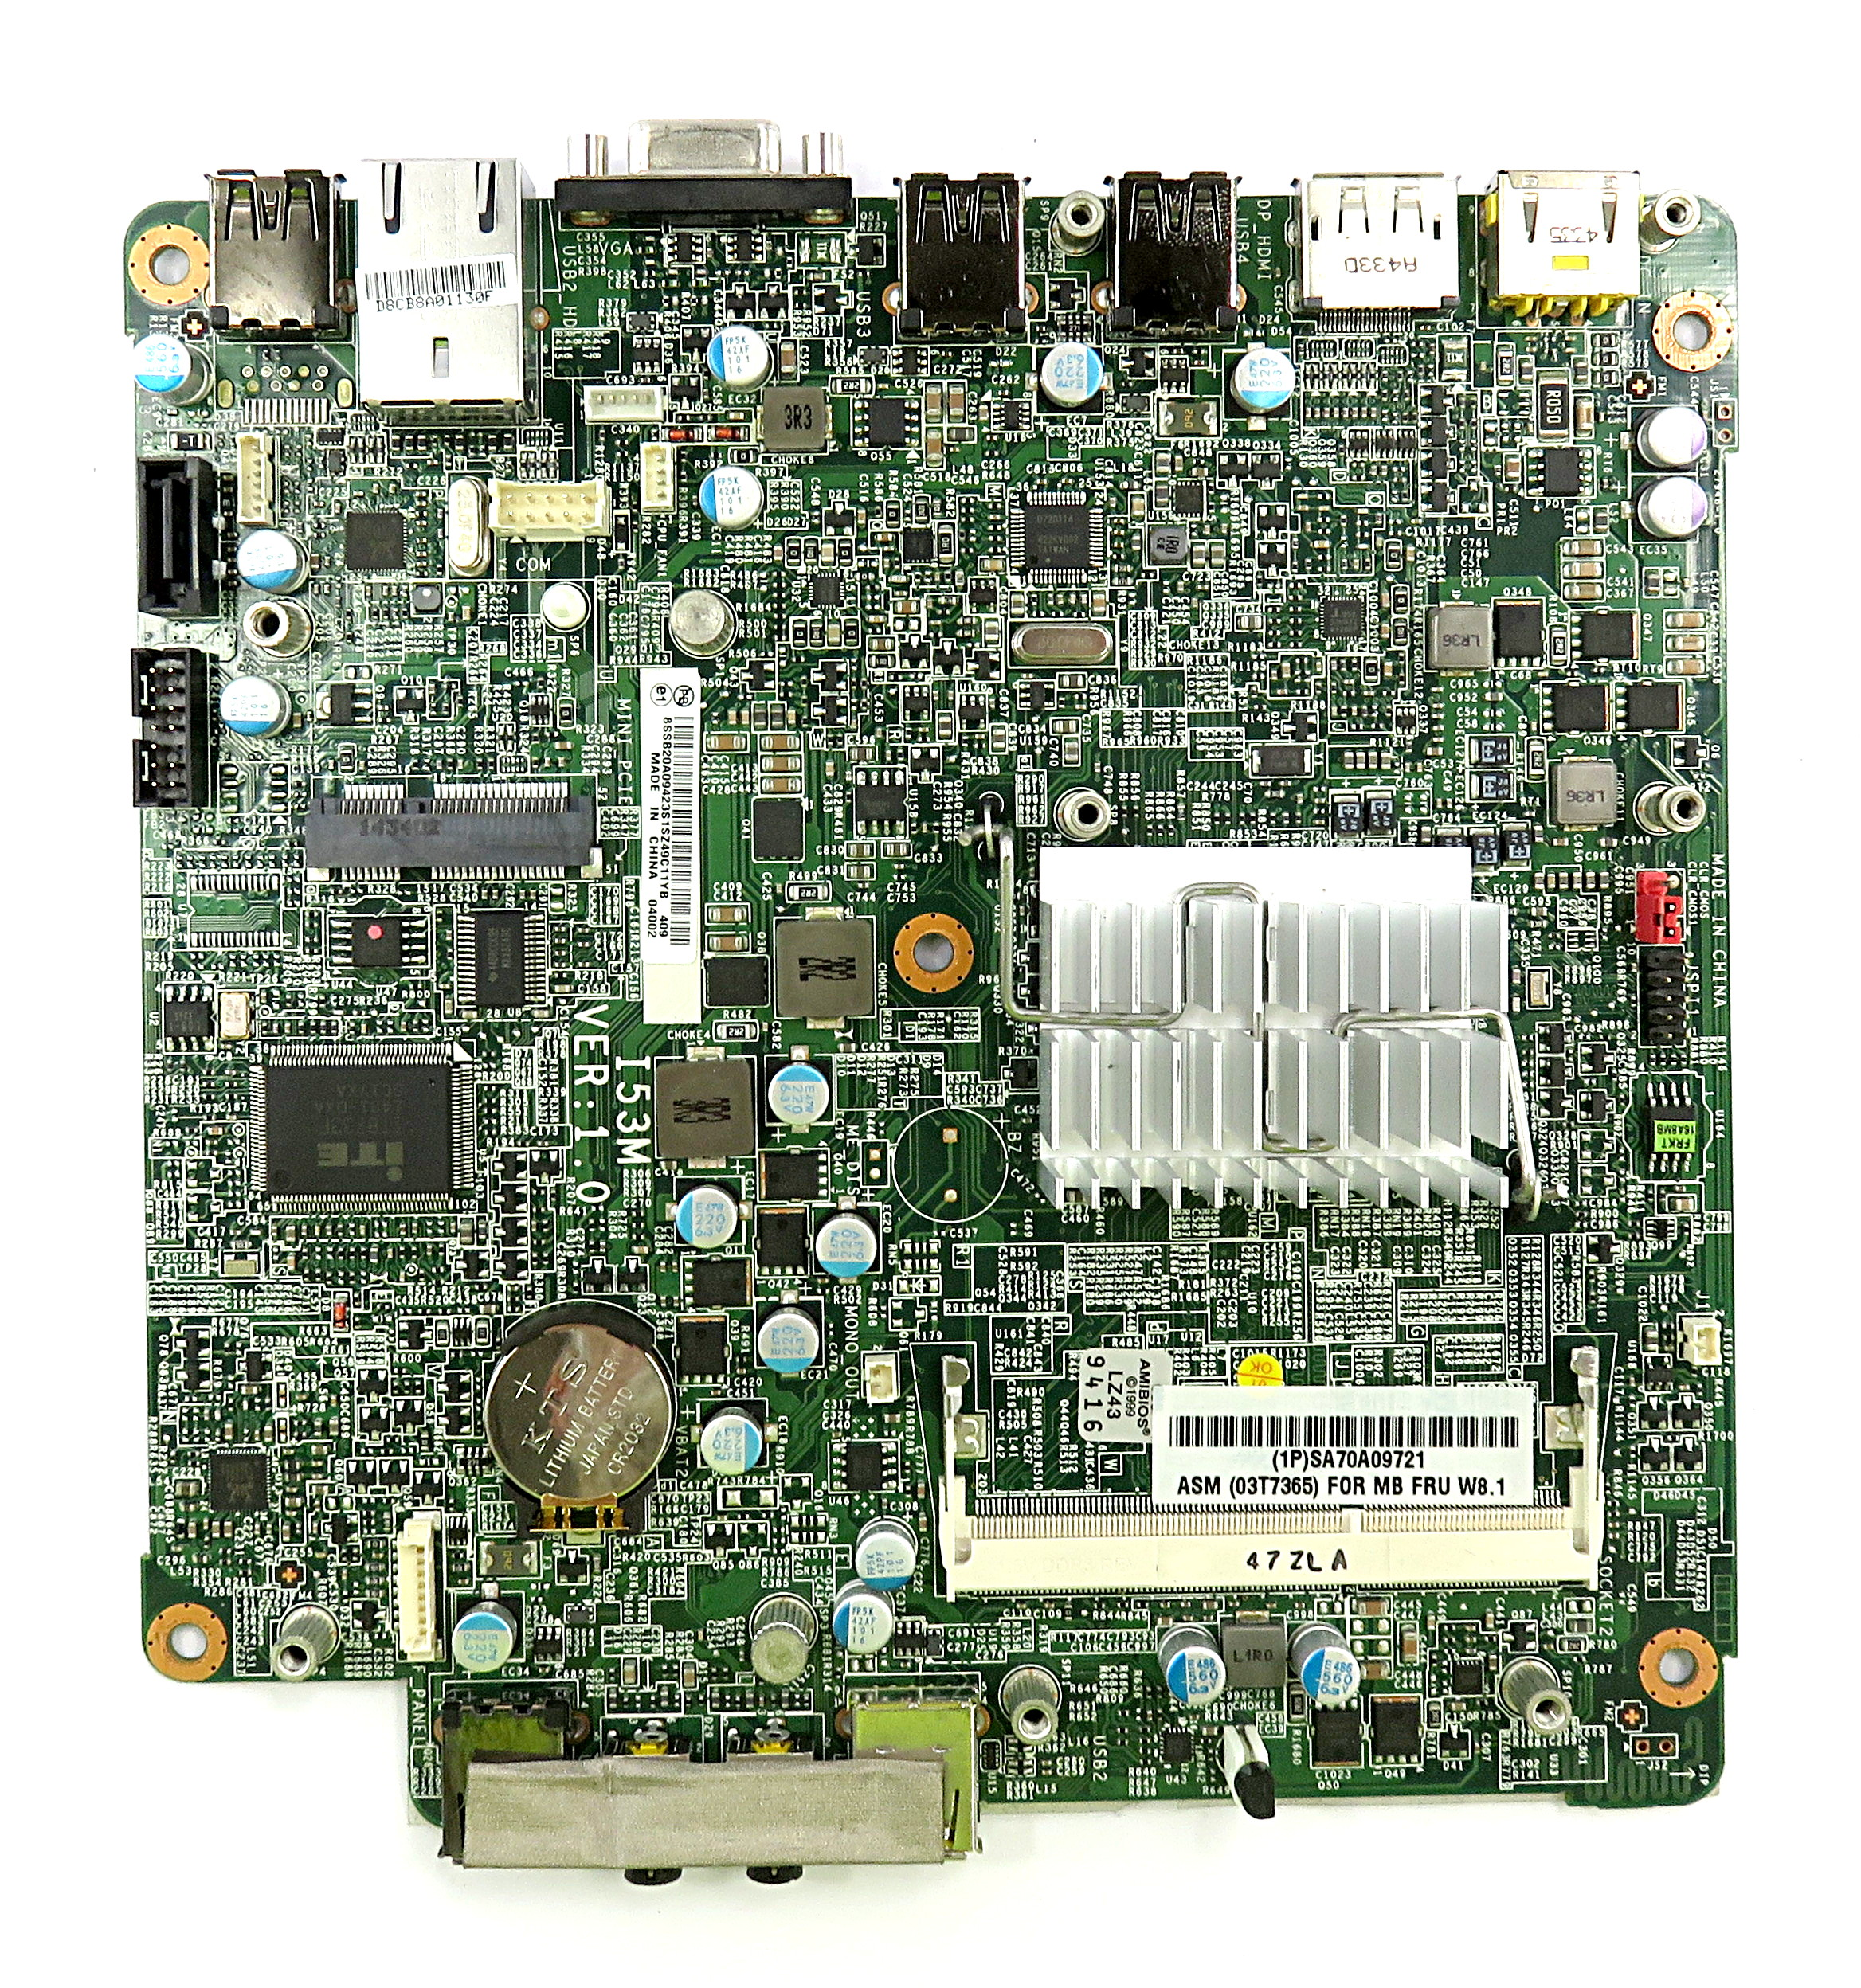 Lenovo 03T7365 I53M VER:1.0 Motherboard f/ ThinkCentre M53 USFF w/ J2900 CPU